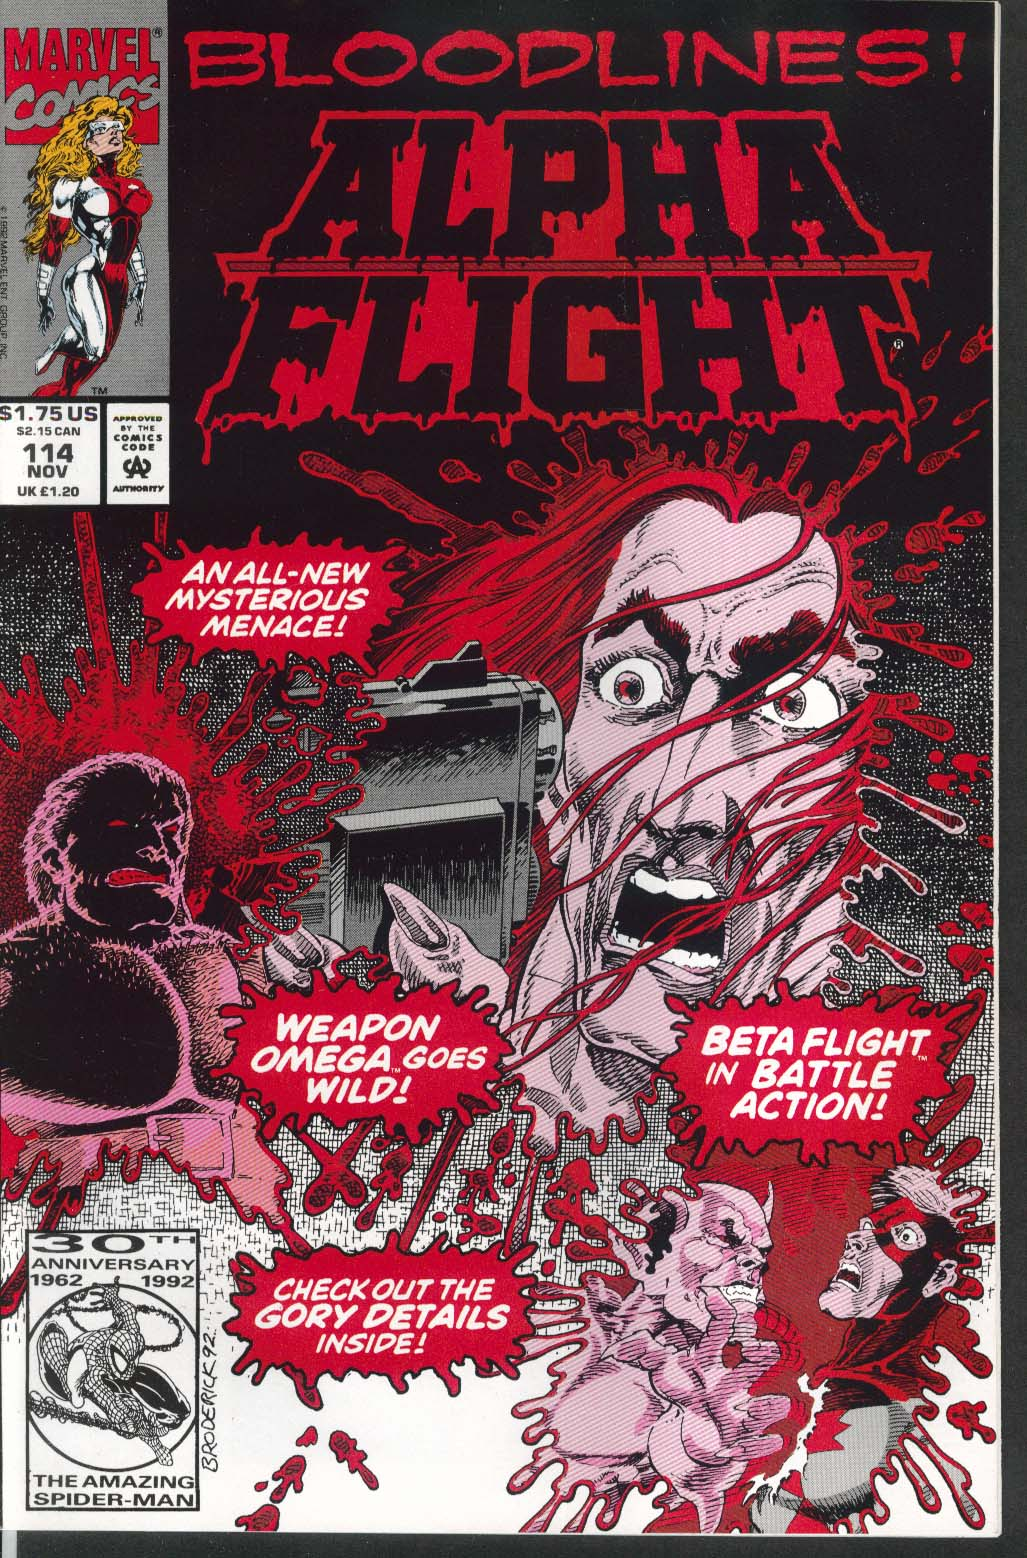 ALPHA FLIGHT #114 Marvel comic book 11 1992 Bloodlines!